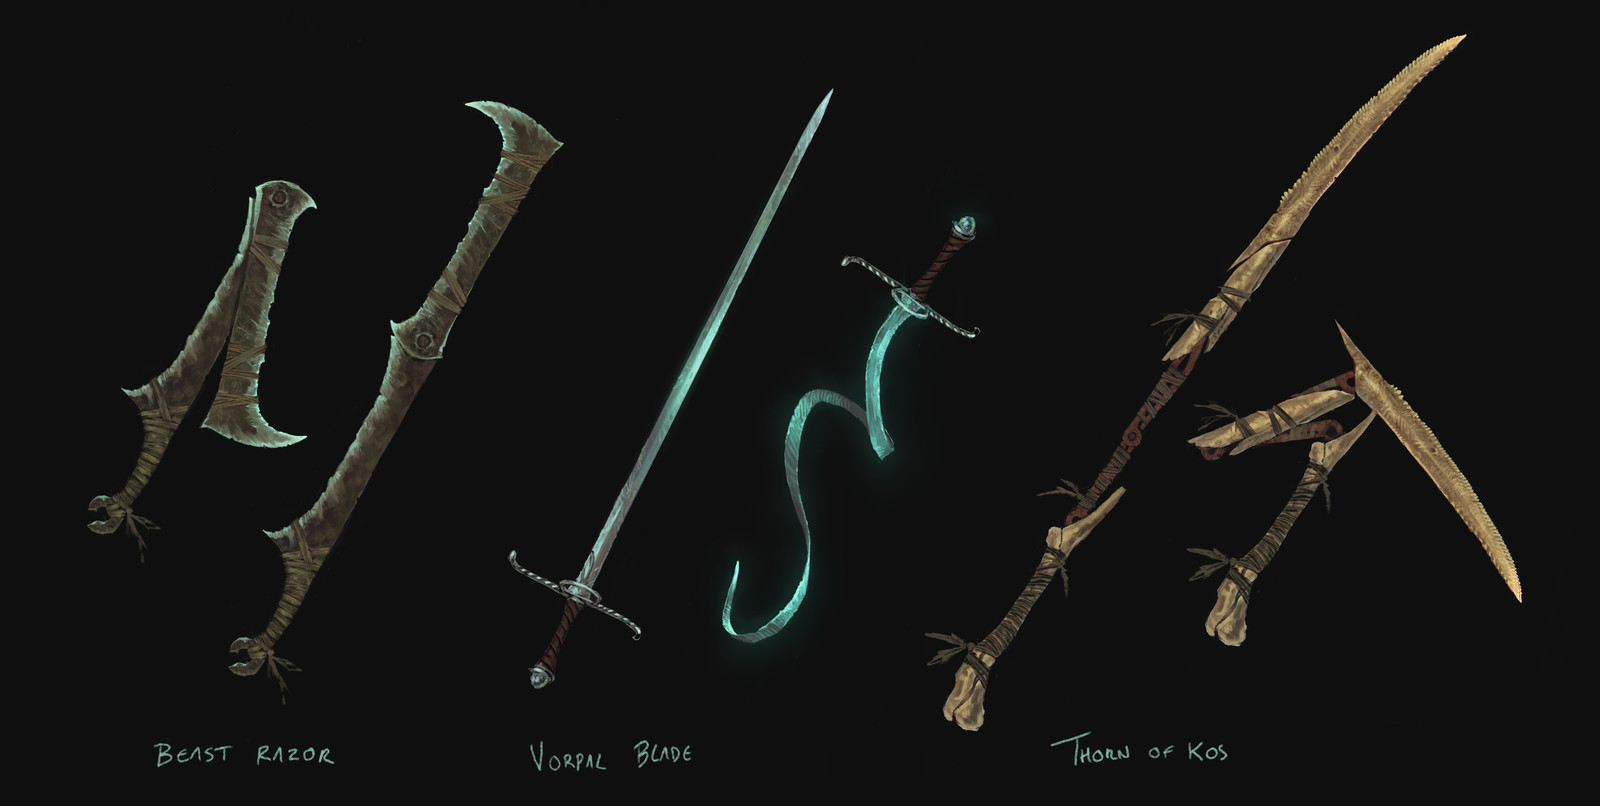 Bloodborne Trick weapons fan concepts